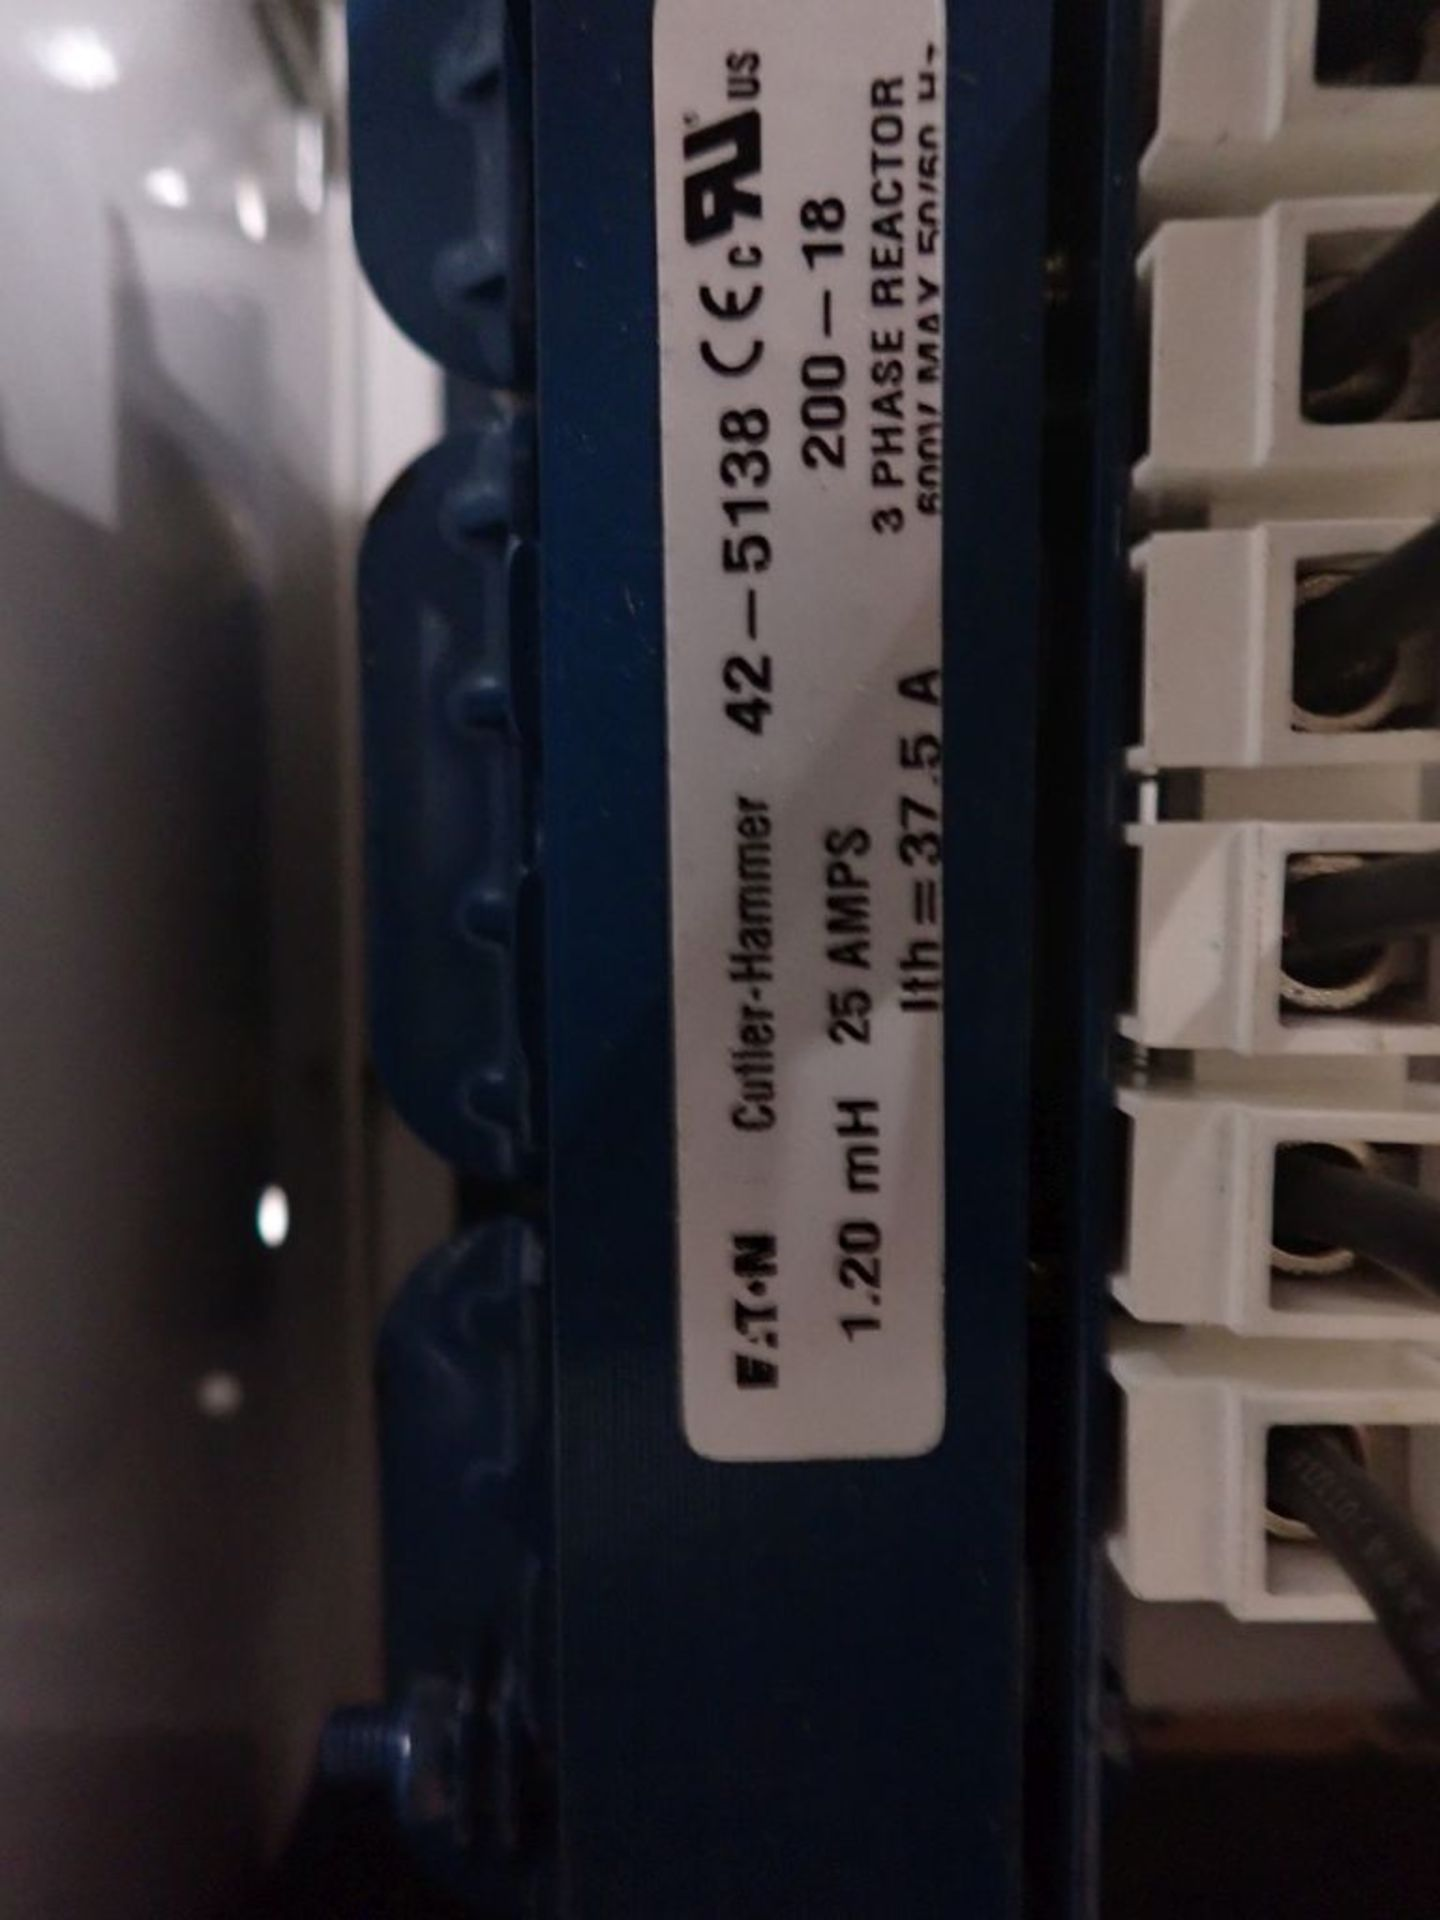 Eaton Freedom 2100 Series Motor Control Center   (4) SVX900-30A, with Eaton AF Drives, SVX9000, - Image 24 of 60